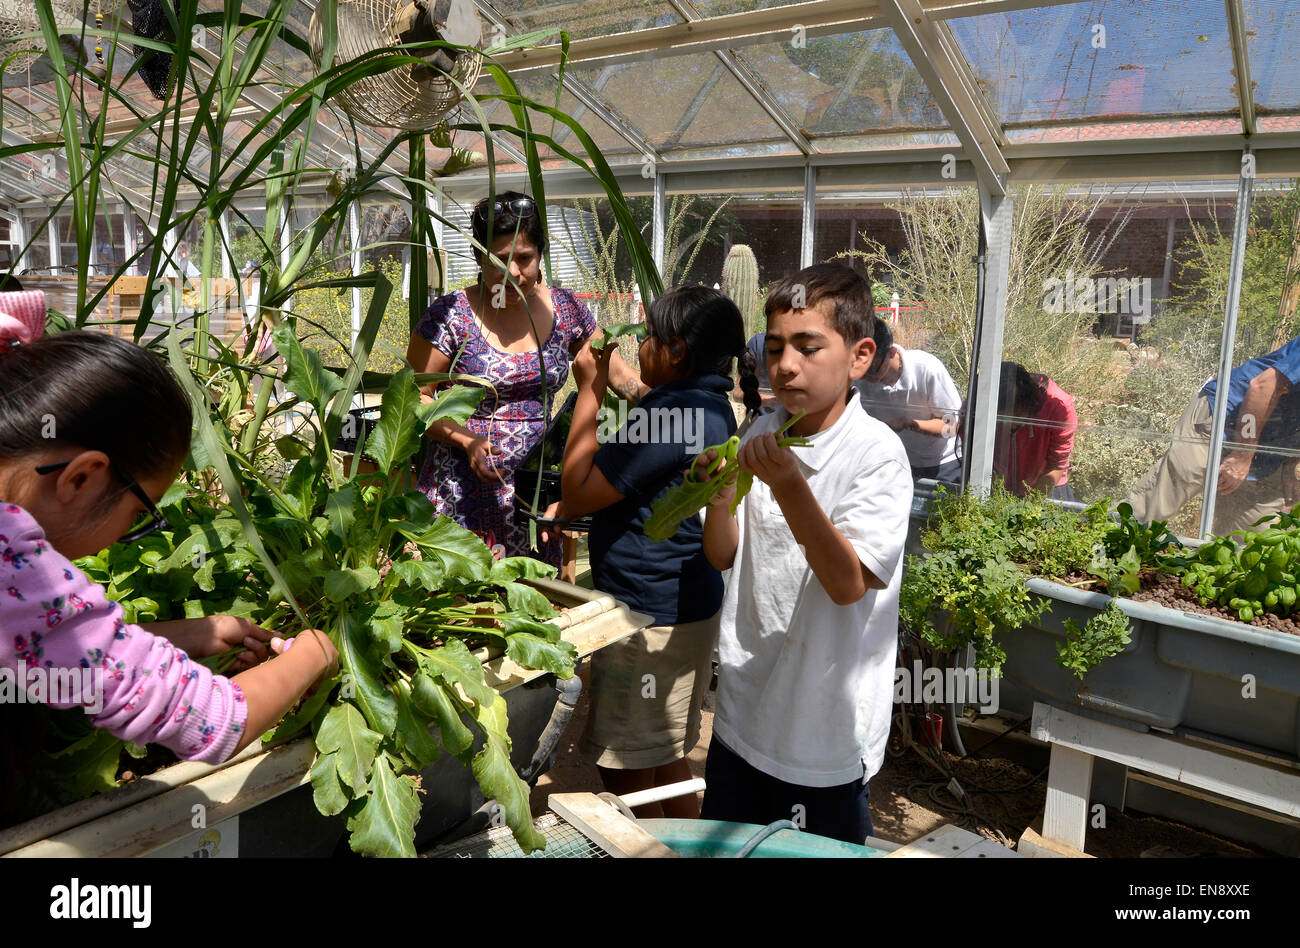 Tucson, Arizona, USA. 29 April, 2015: Jasmine Mendez, 10, (left), University of Arizona intern, Rebecca Renteria, - Stock Image